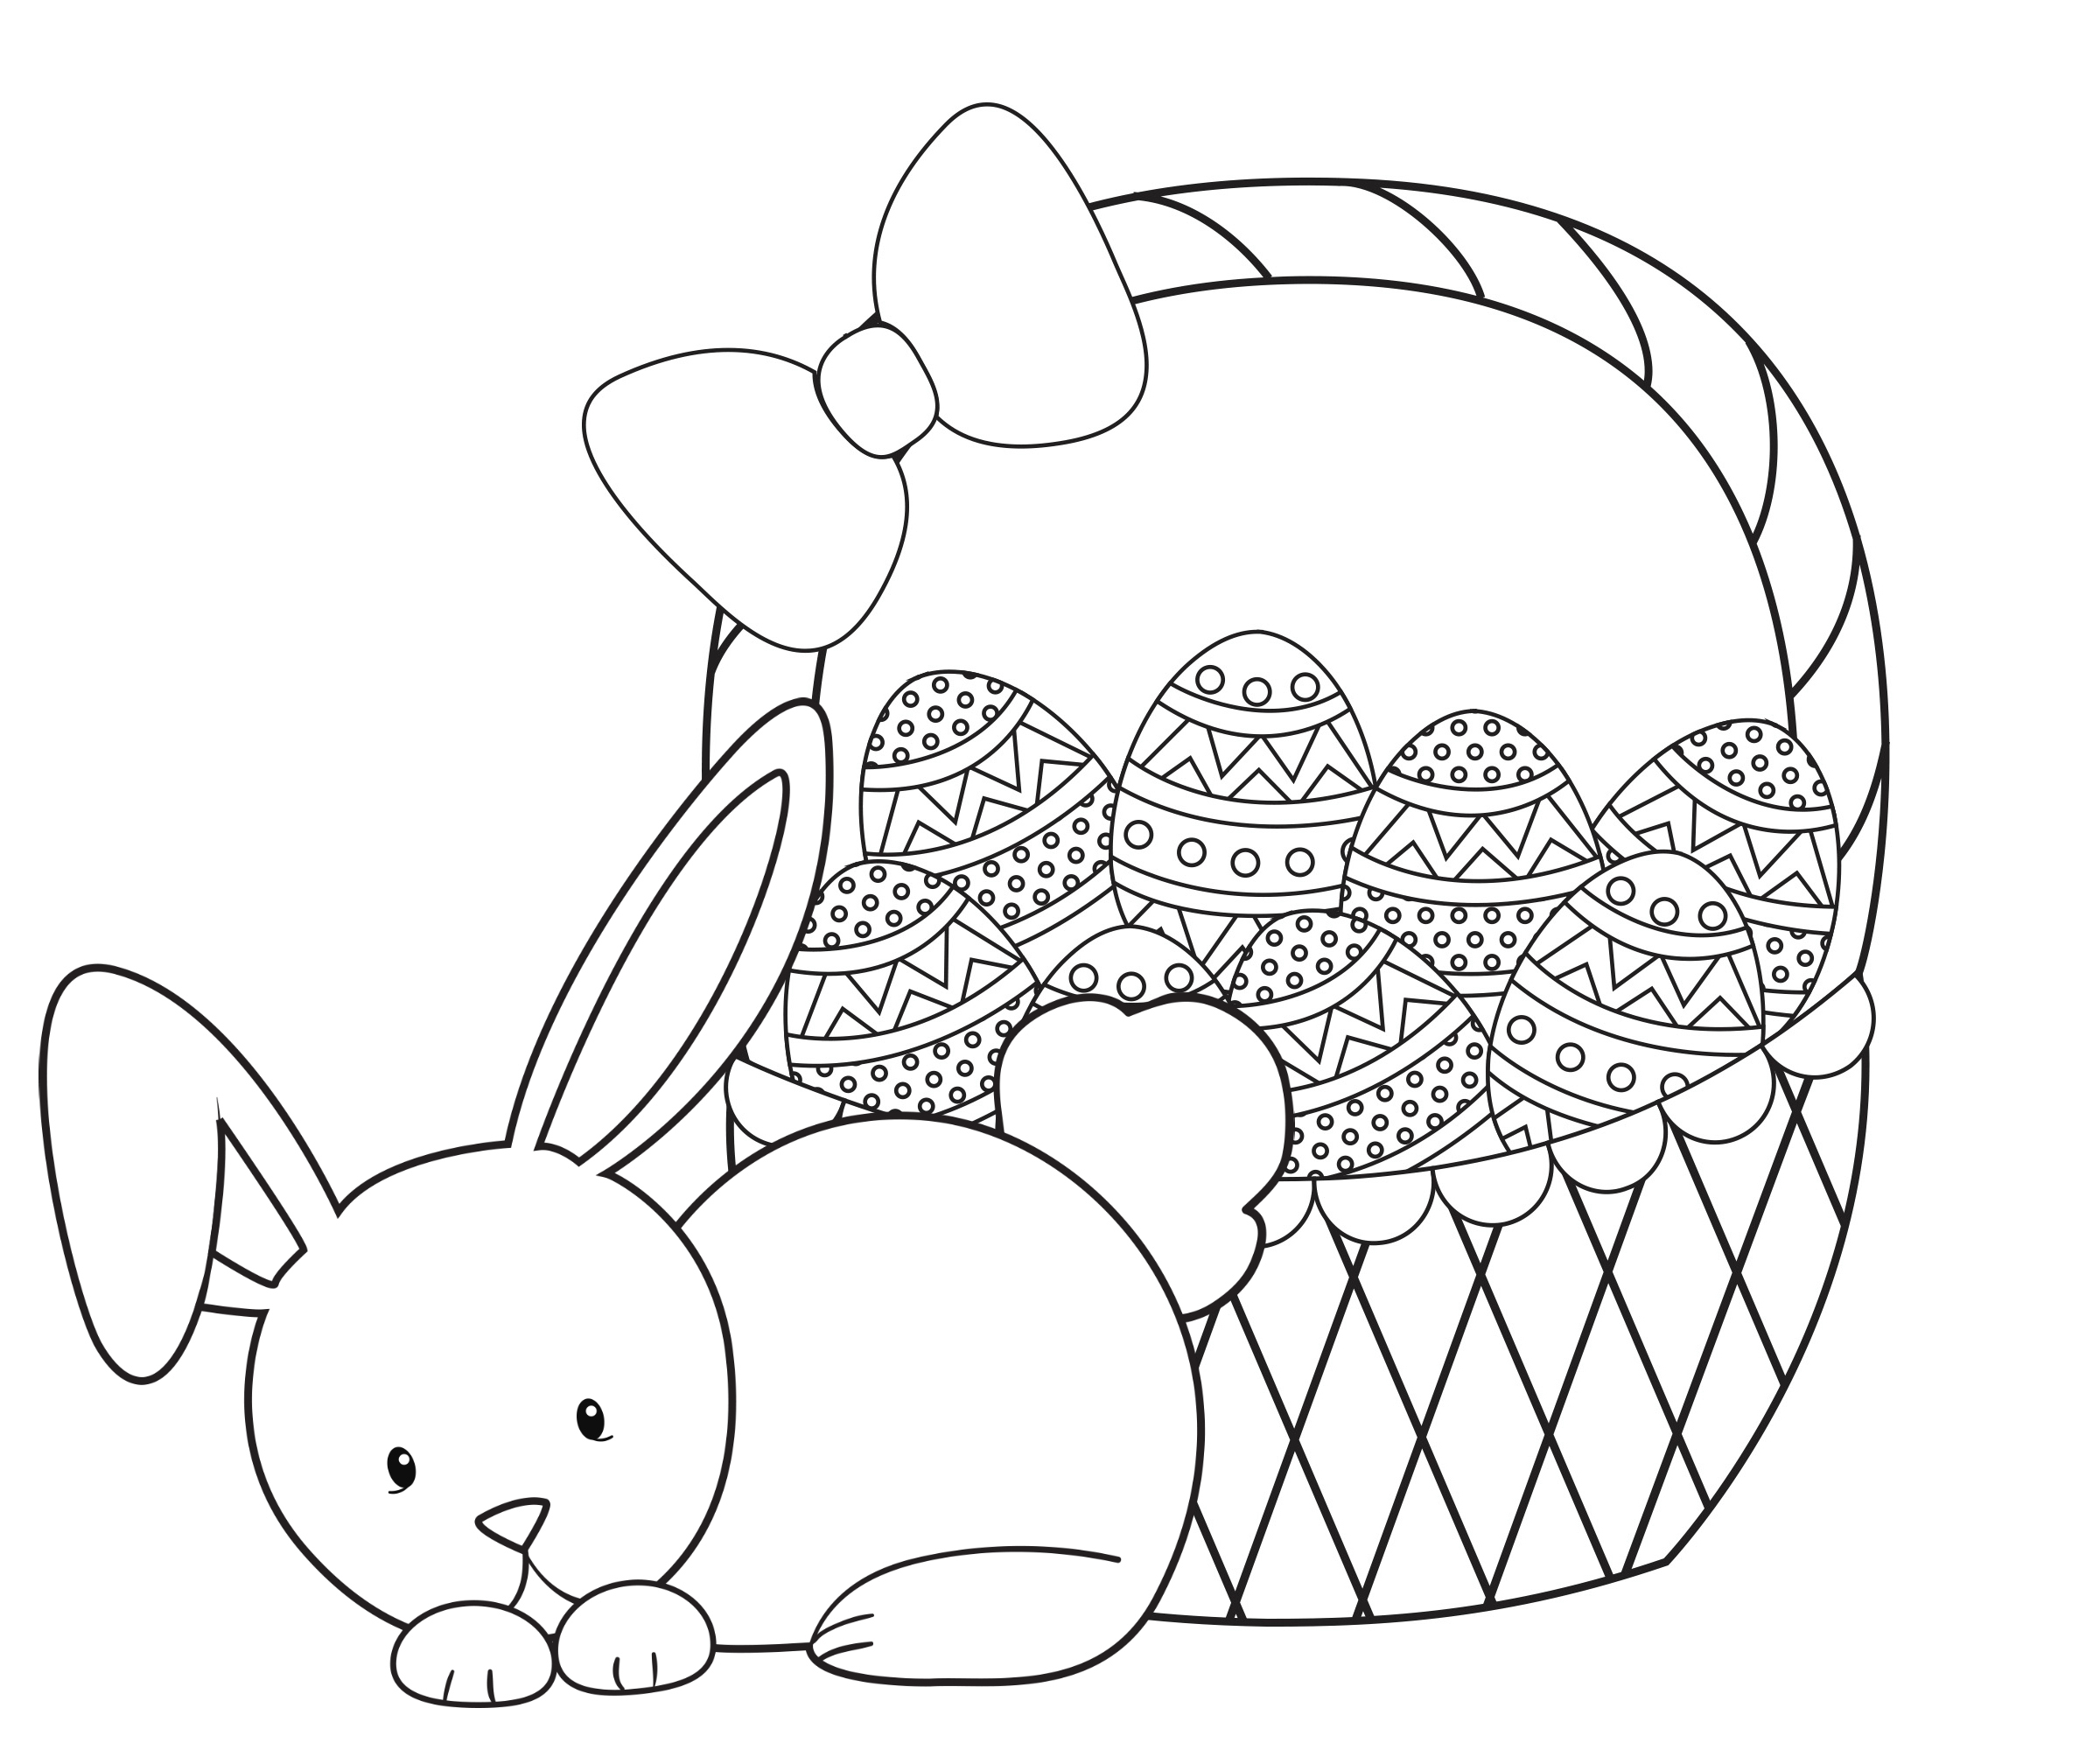 Easter Coloring Pages for Kids Crazy Little Projects Printable Of Delighted Bunny Print Out Coloring Pages Easter for Kids Crazy Printable